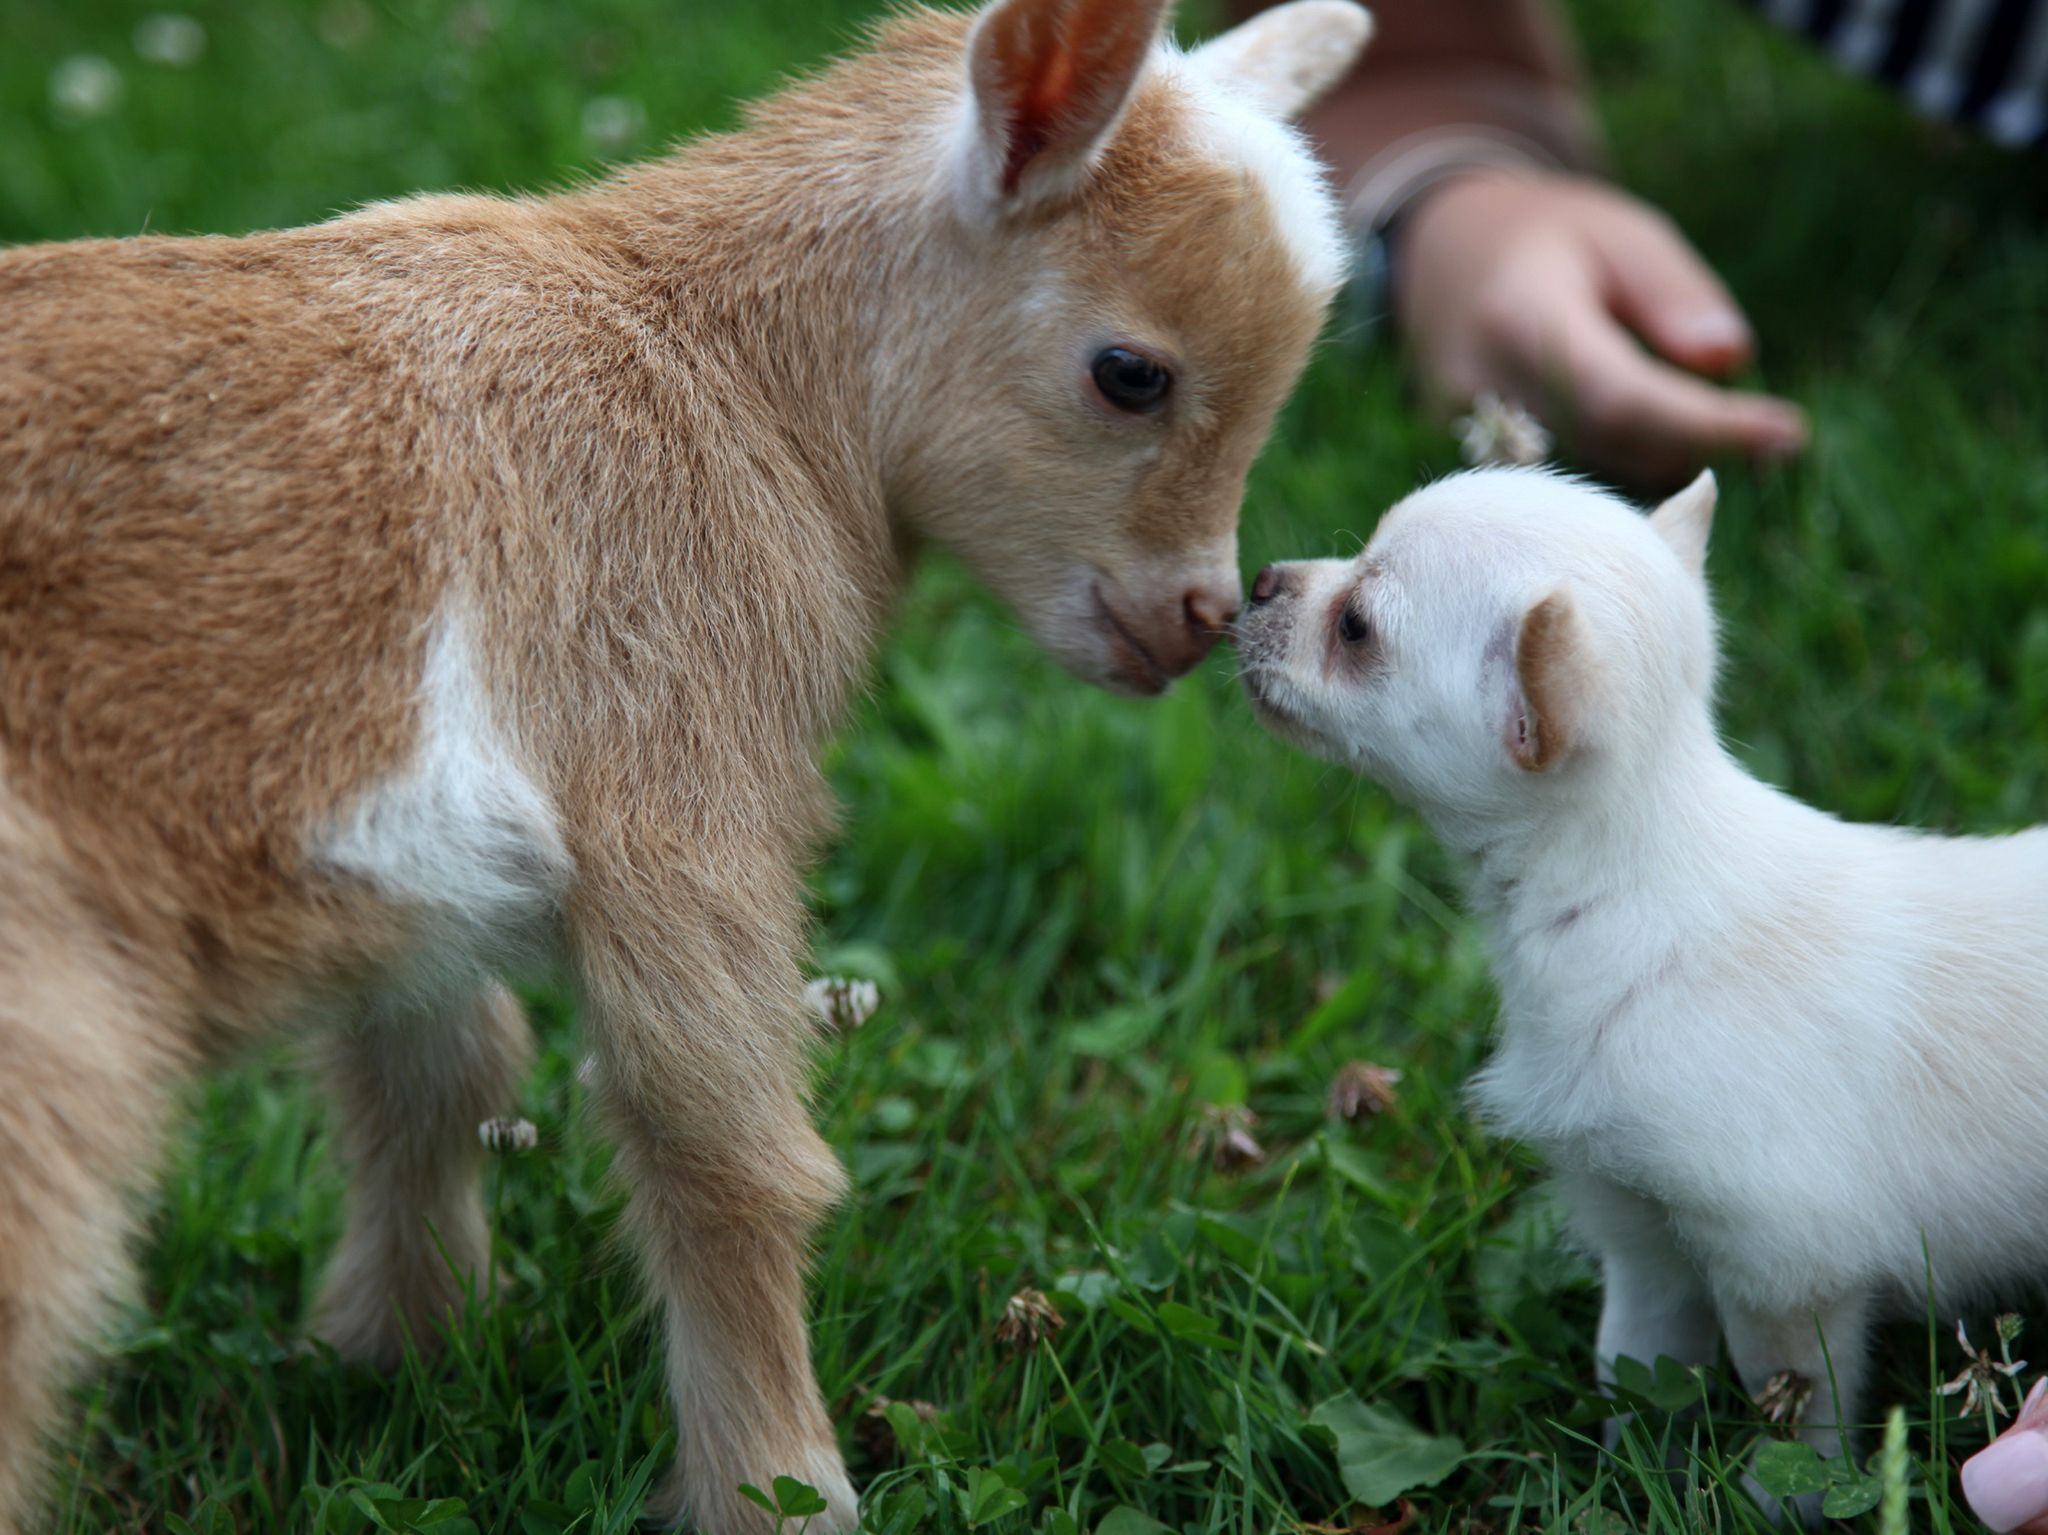 Cumberland, Maine:  Tiny Chihuahua Lola sniffs at one of her best friends, a Nigerian Dwarf goat... [Photo of the day - May 2019]